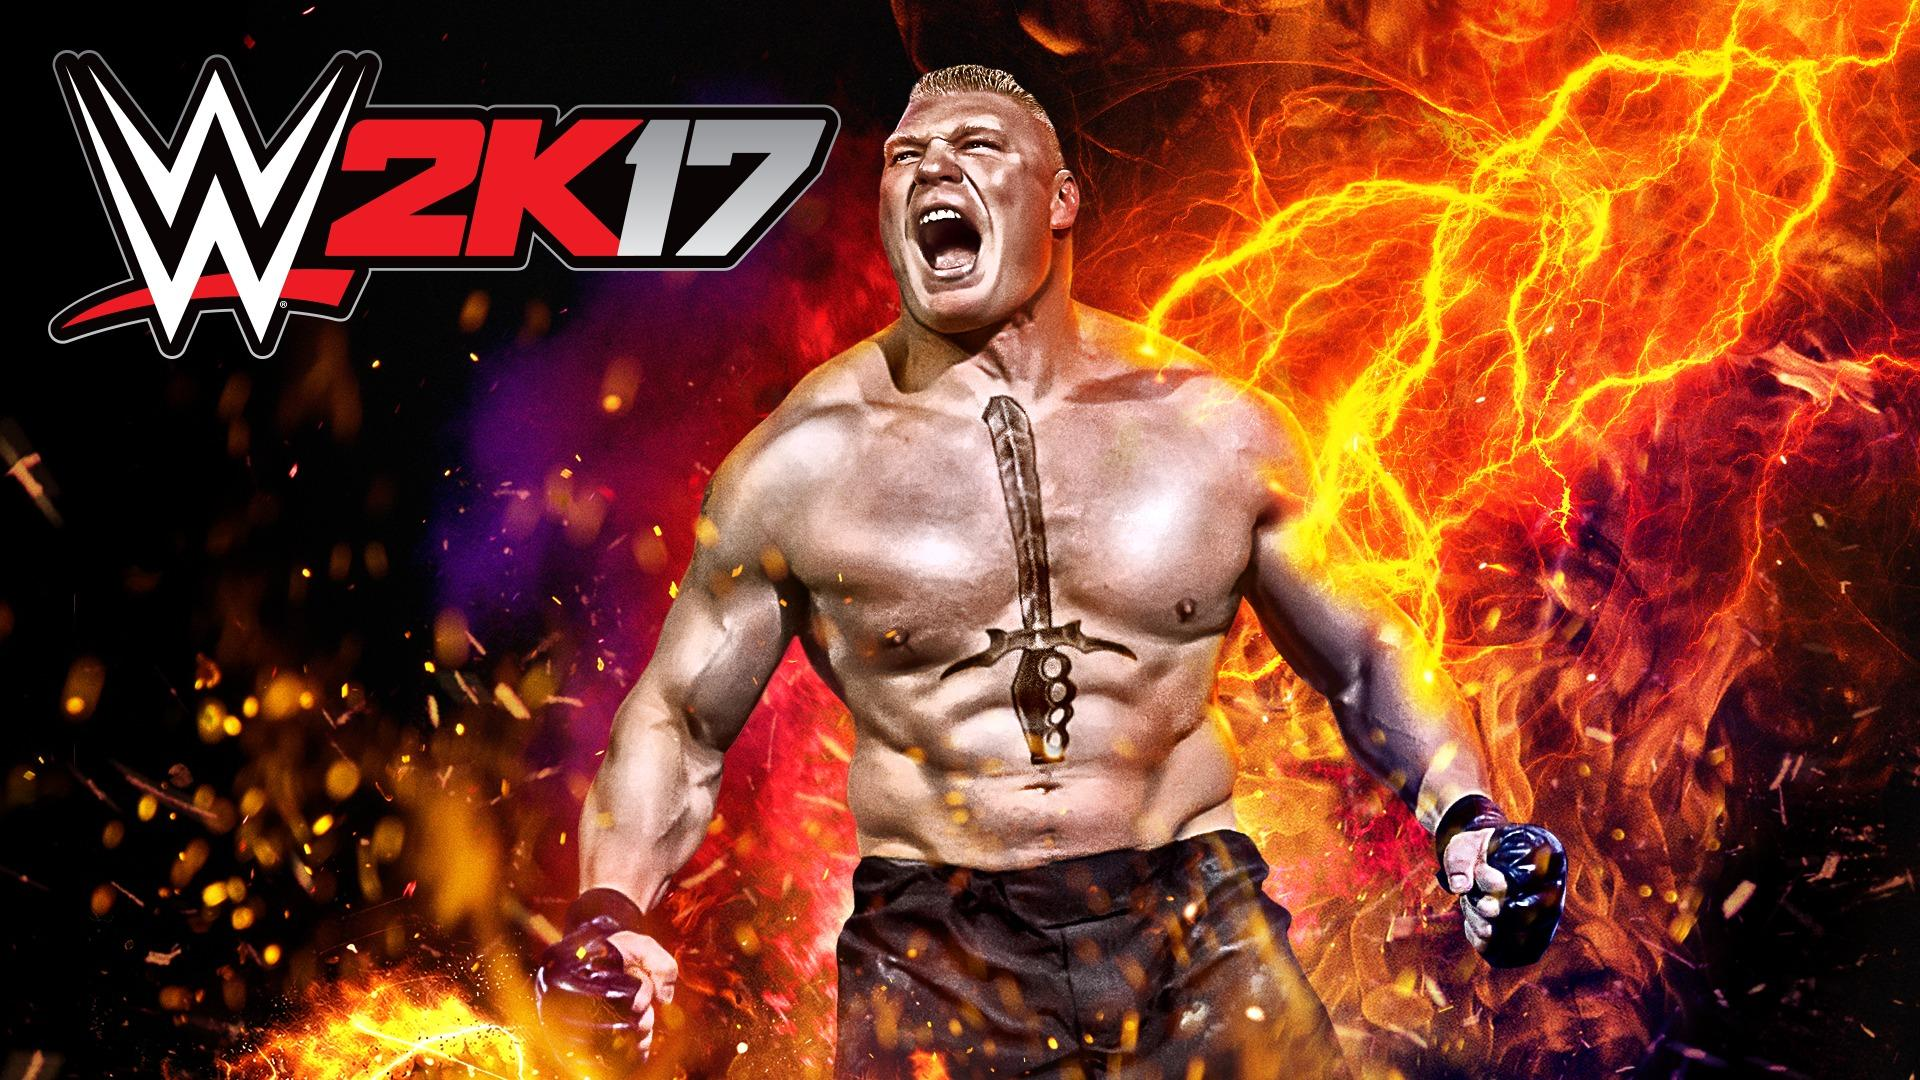 WWE 2K17 Brock Lesnar Wallpaper (Cover Art)